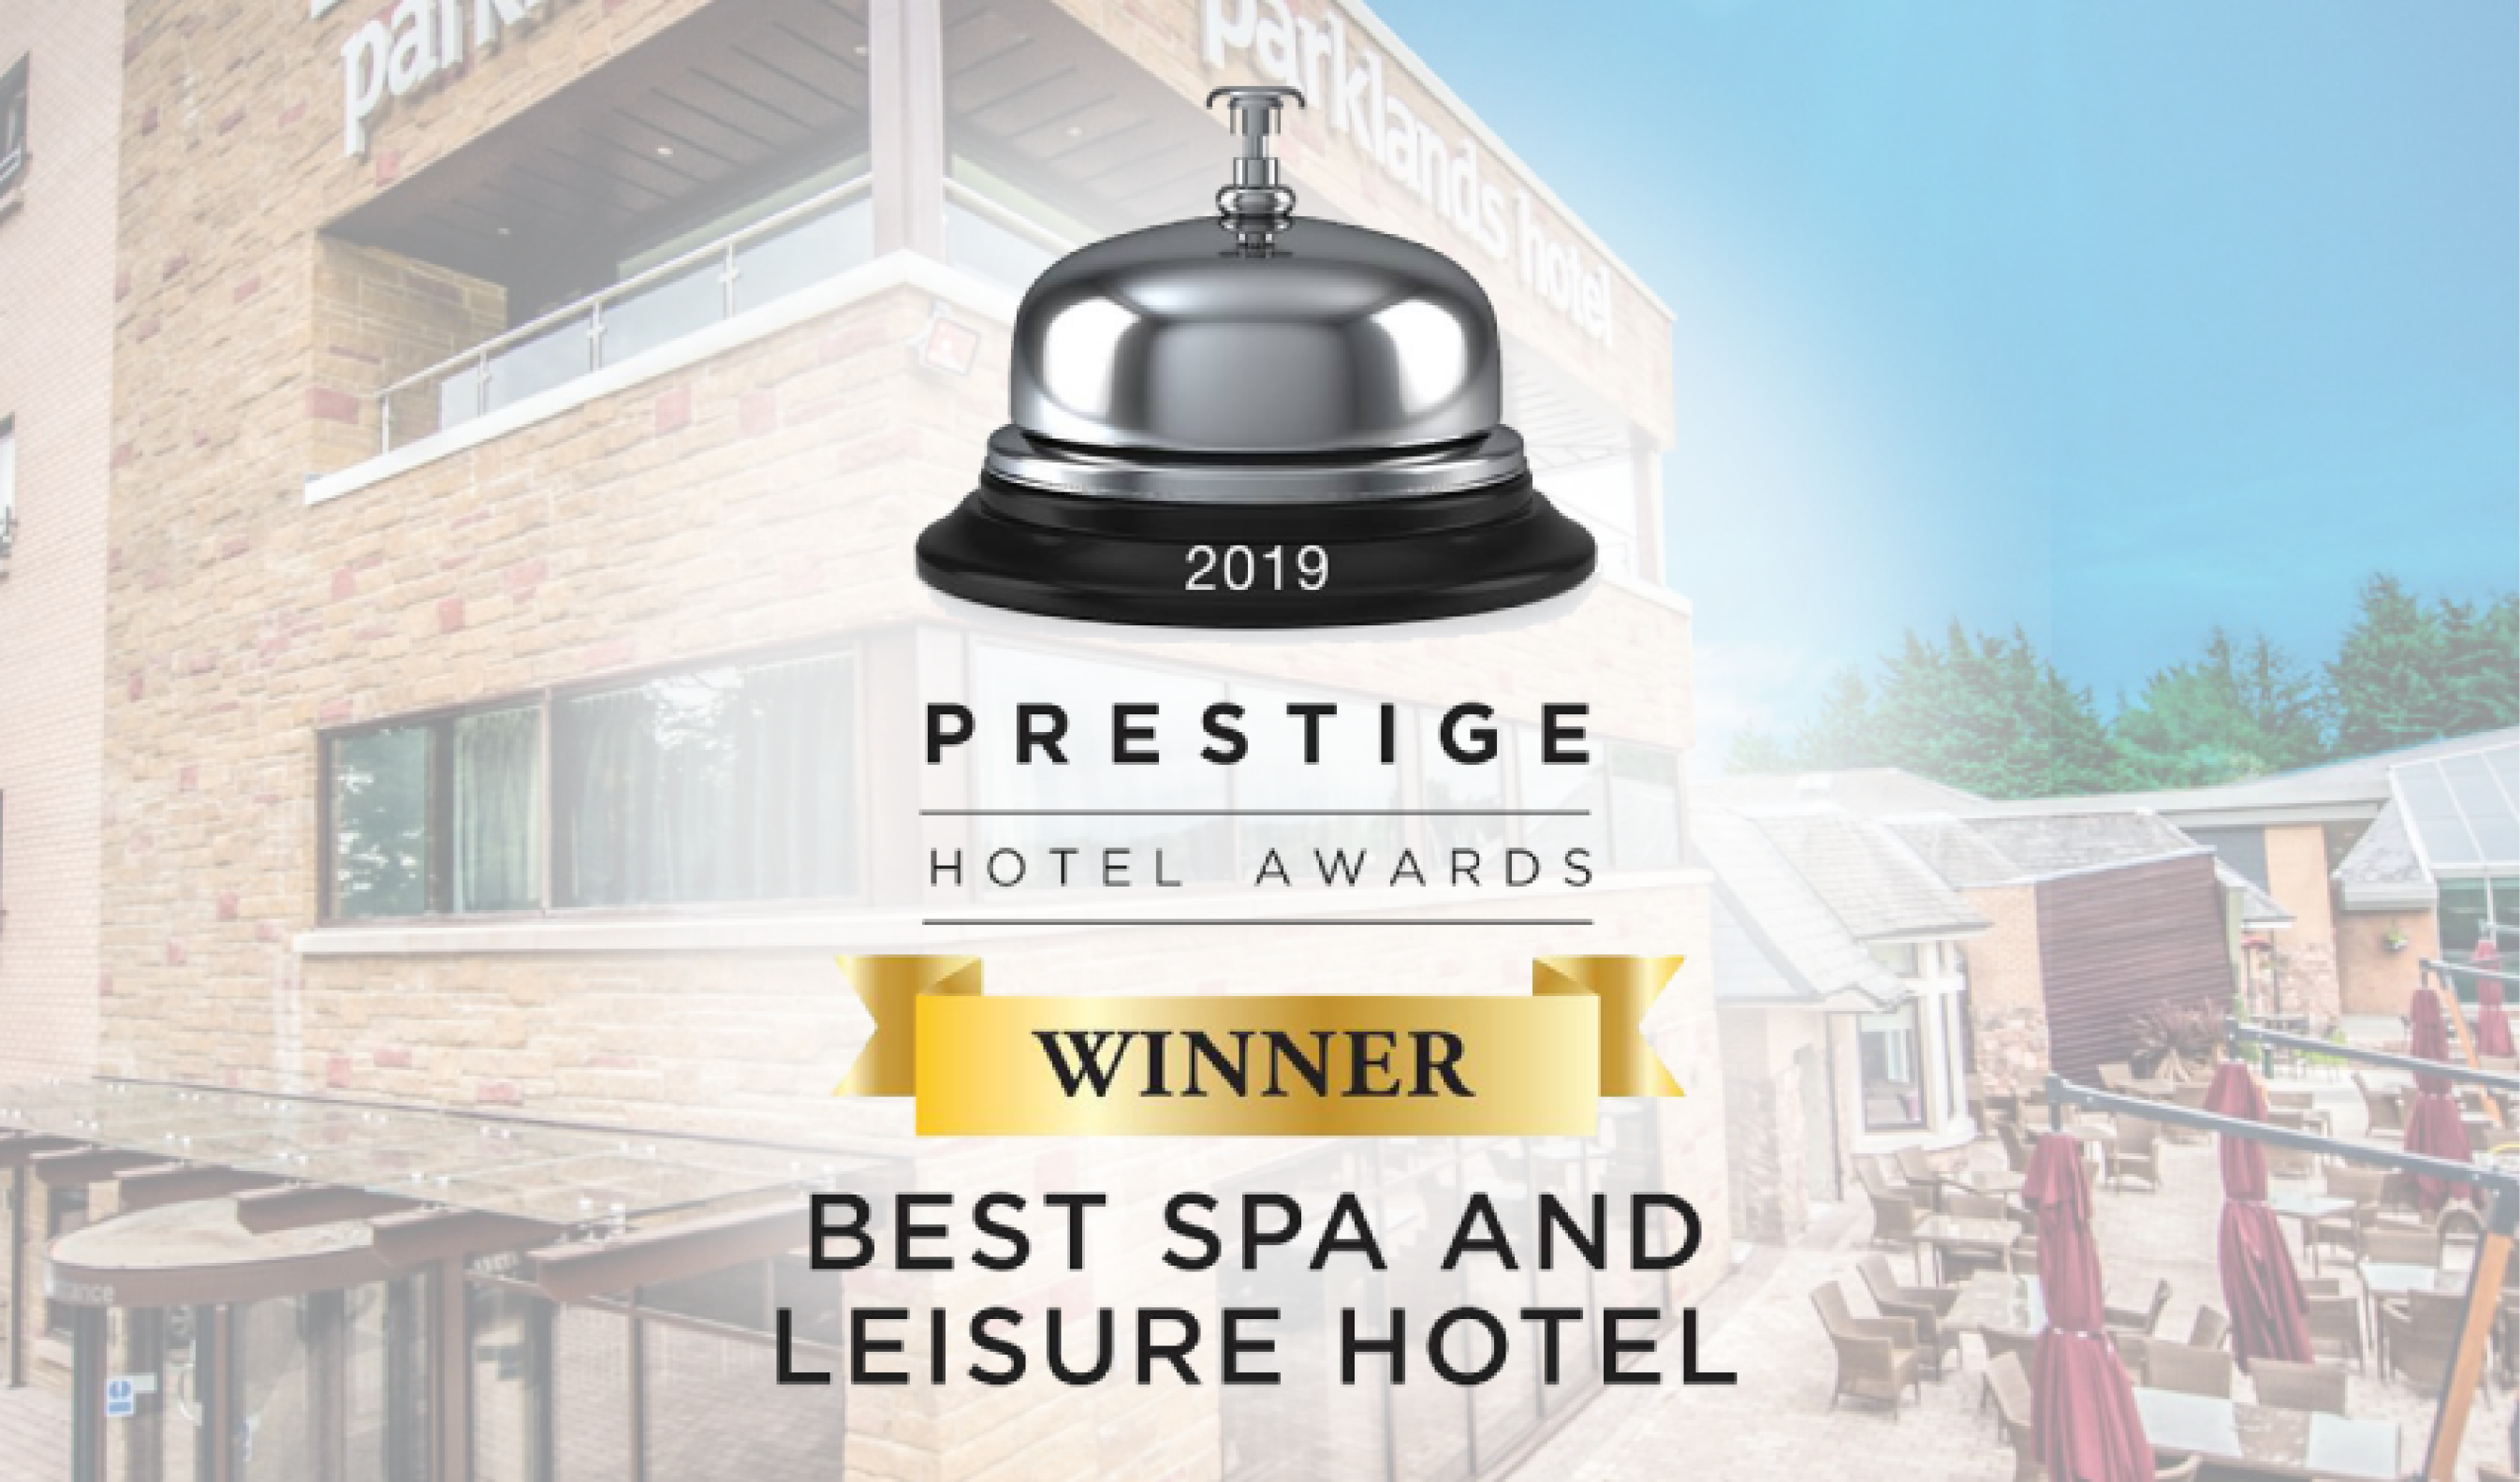 Prestige Hotel Awards 2019 Winner